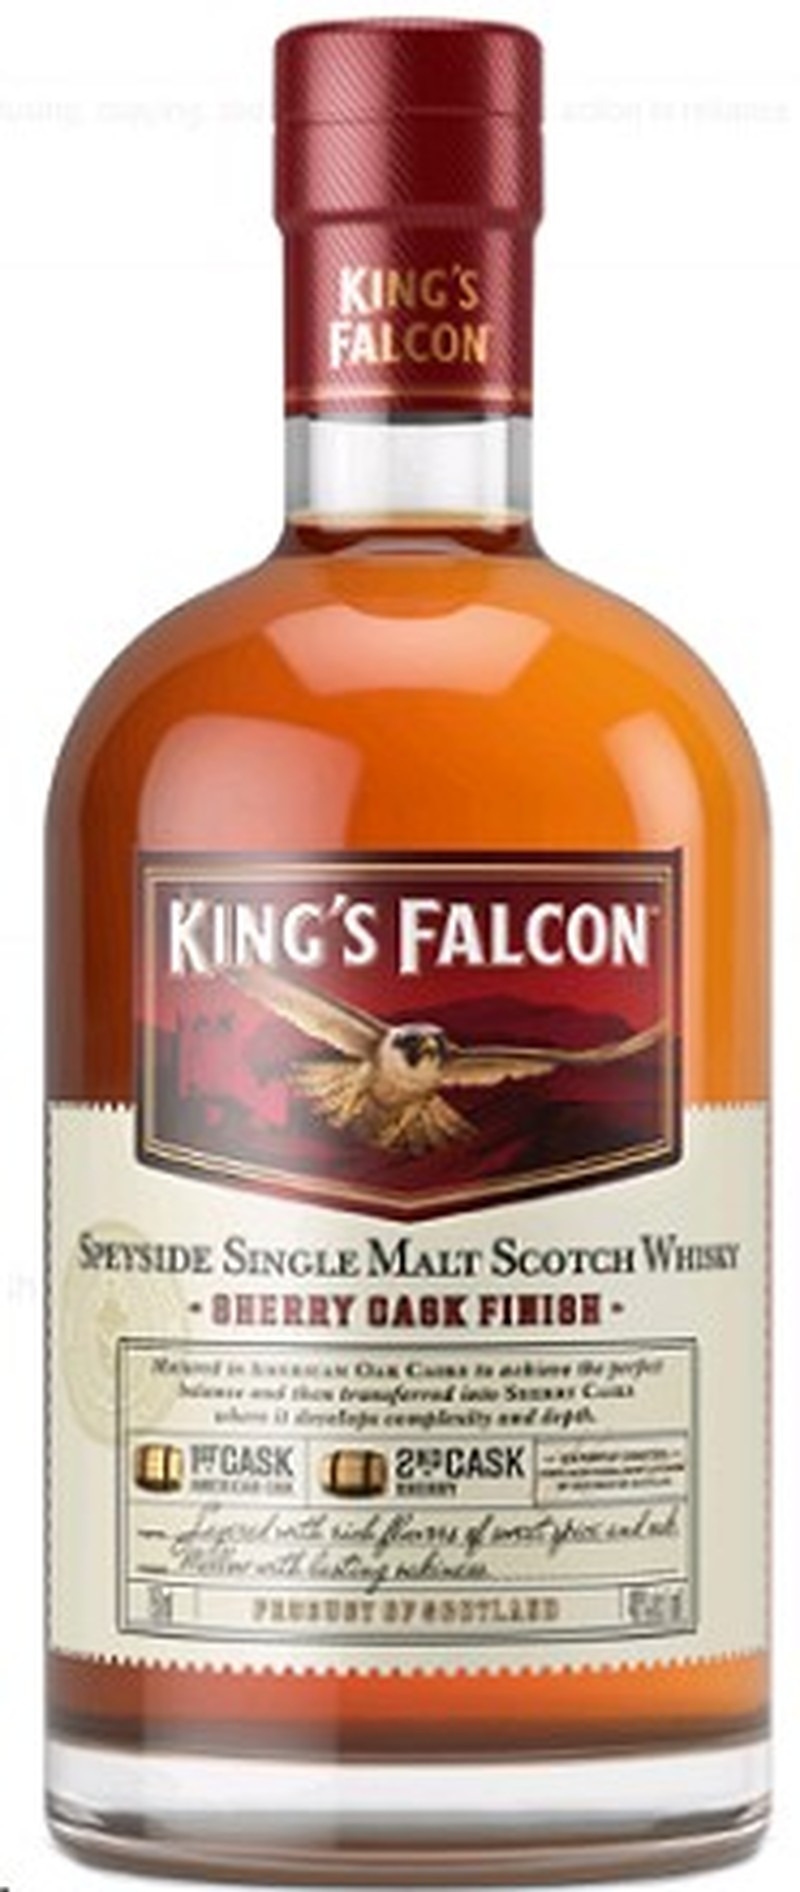 KING'S FALCON SHERRY CASK FINISH SINGLE MALT 750ML